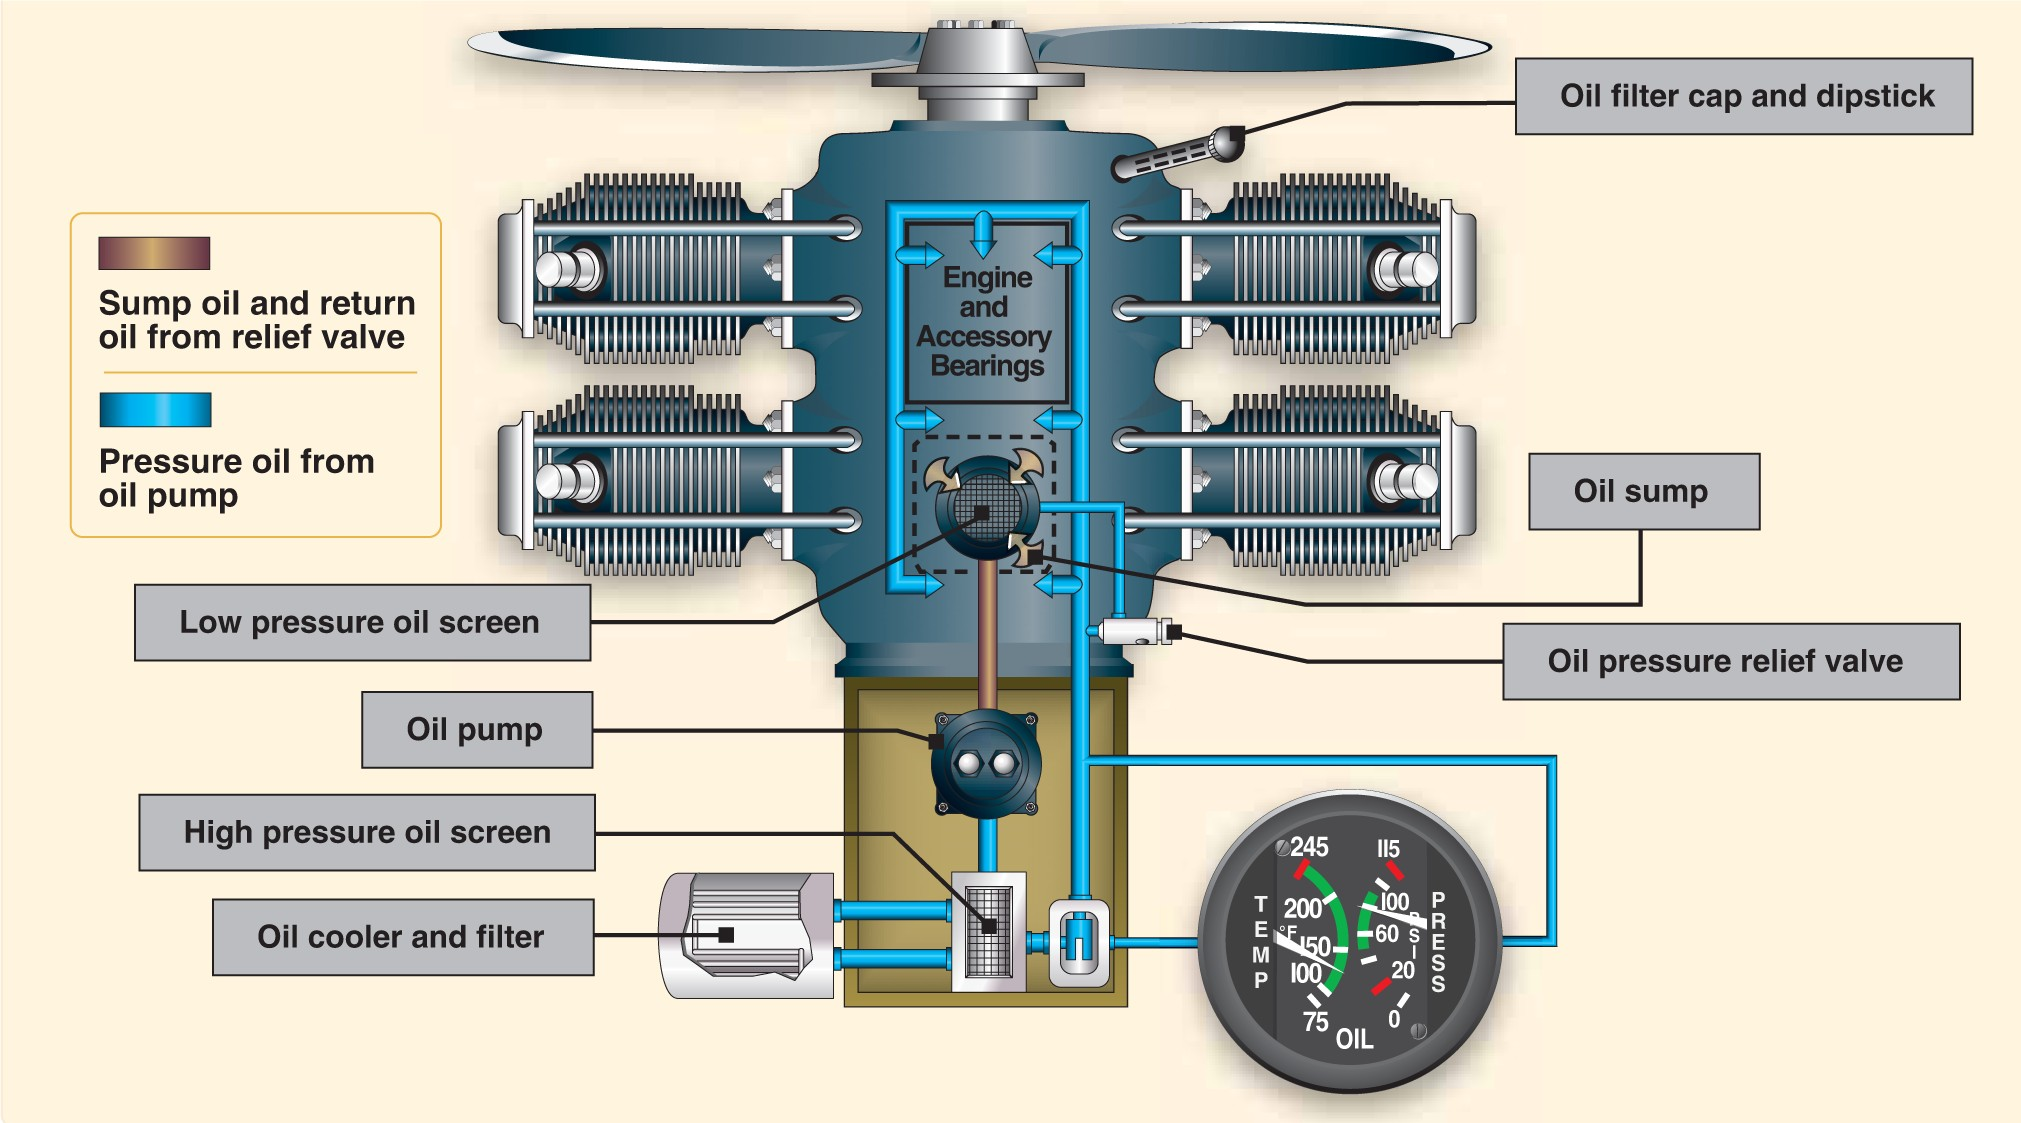 Dry Sump Oil System Diagram Barnes Inc Service And Repair Pump Wiring Aircraft Systems Learn To Fly Blog Asa Aviation